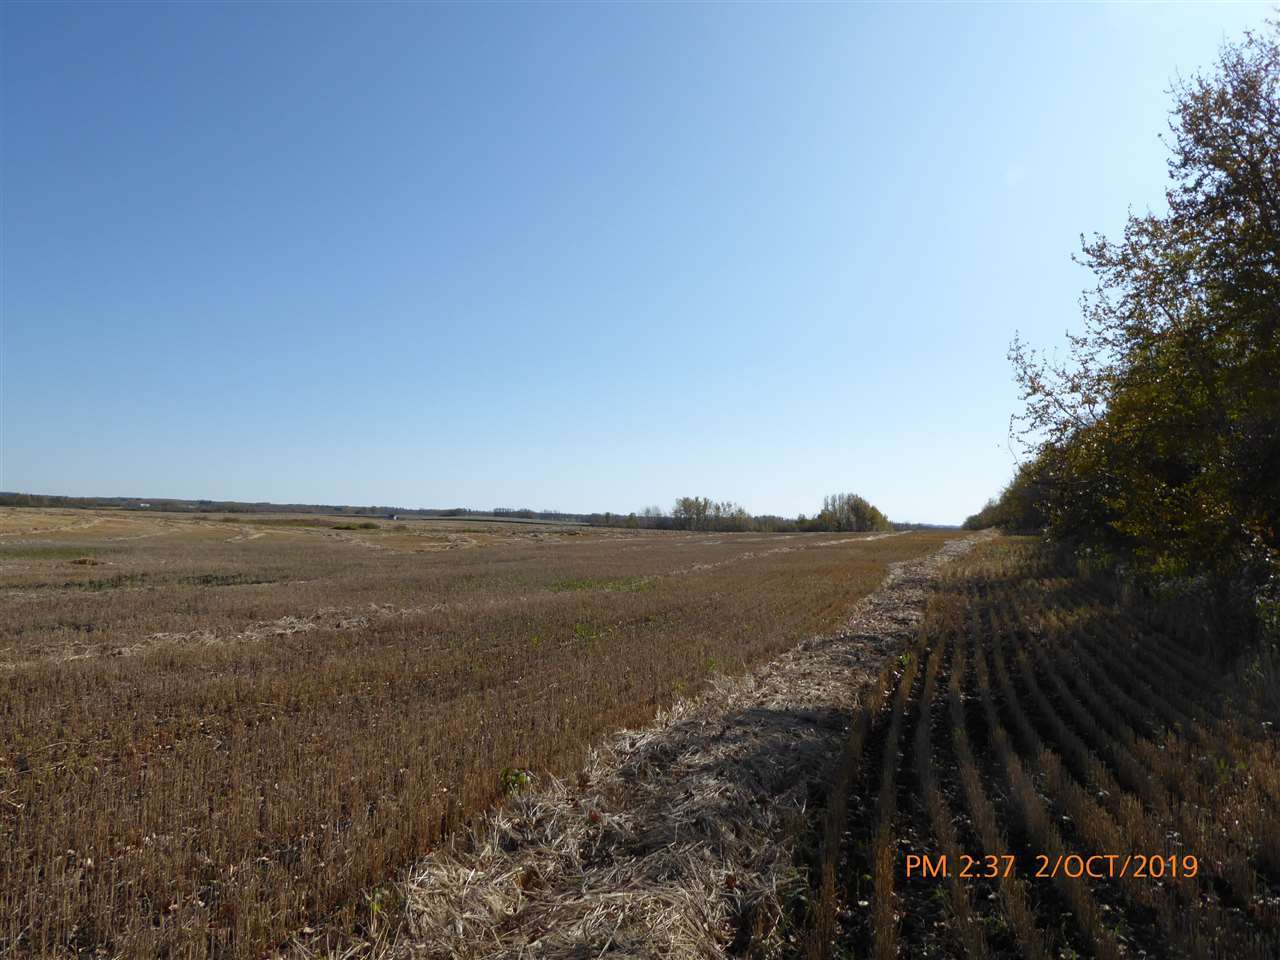 ML# E4163659 - N of HWY #14 Rr 193, South Of Rr Right Of Way